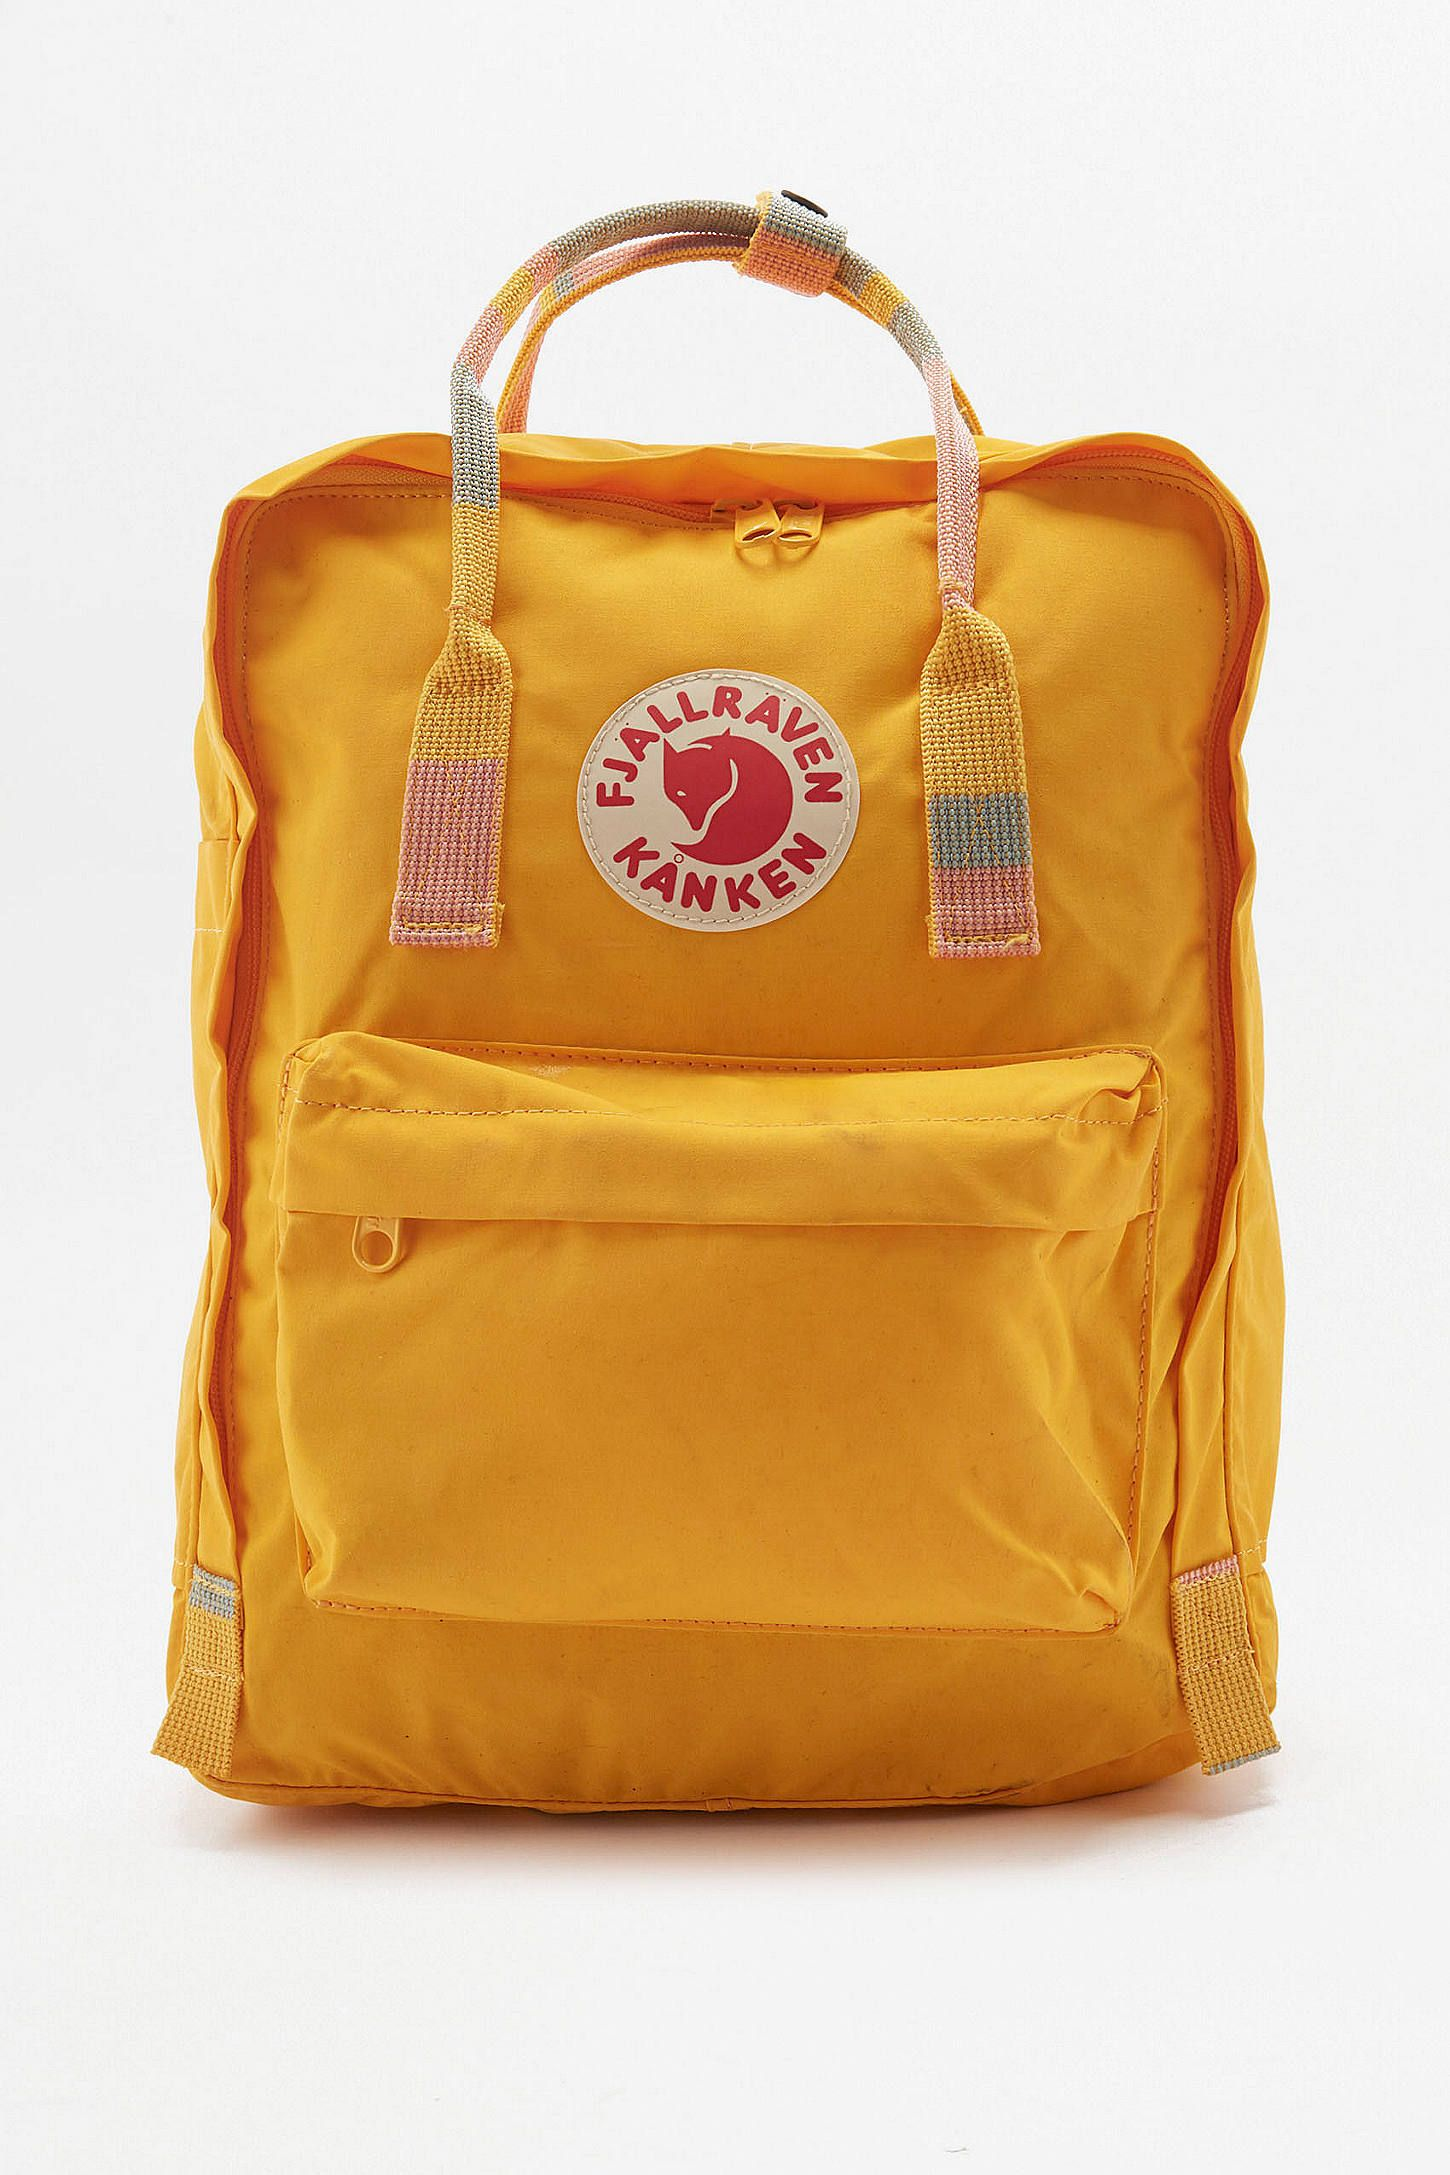 42765feaa Shop Fjallraven Kanken Warm Yellow Striped Handle Backpack at Urban  Outfitters today. We carry all the latest styles, colours and brands for  you to choose ...